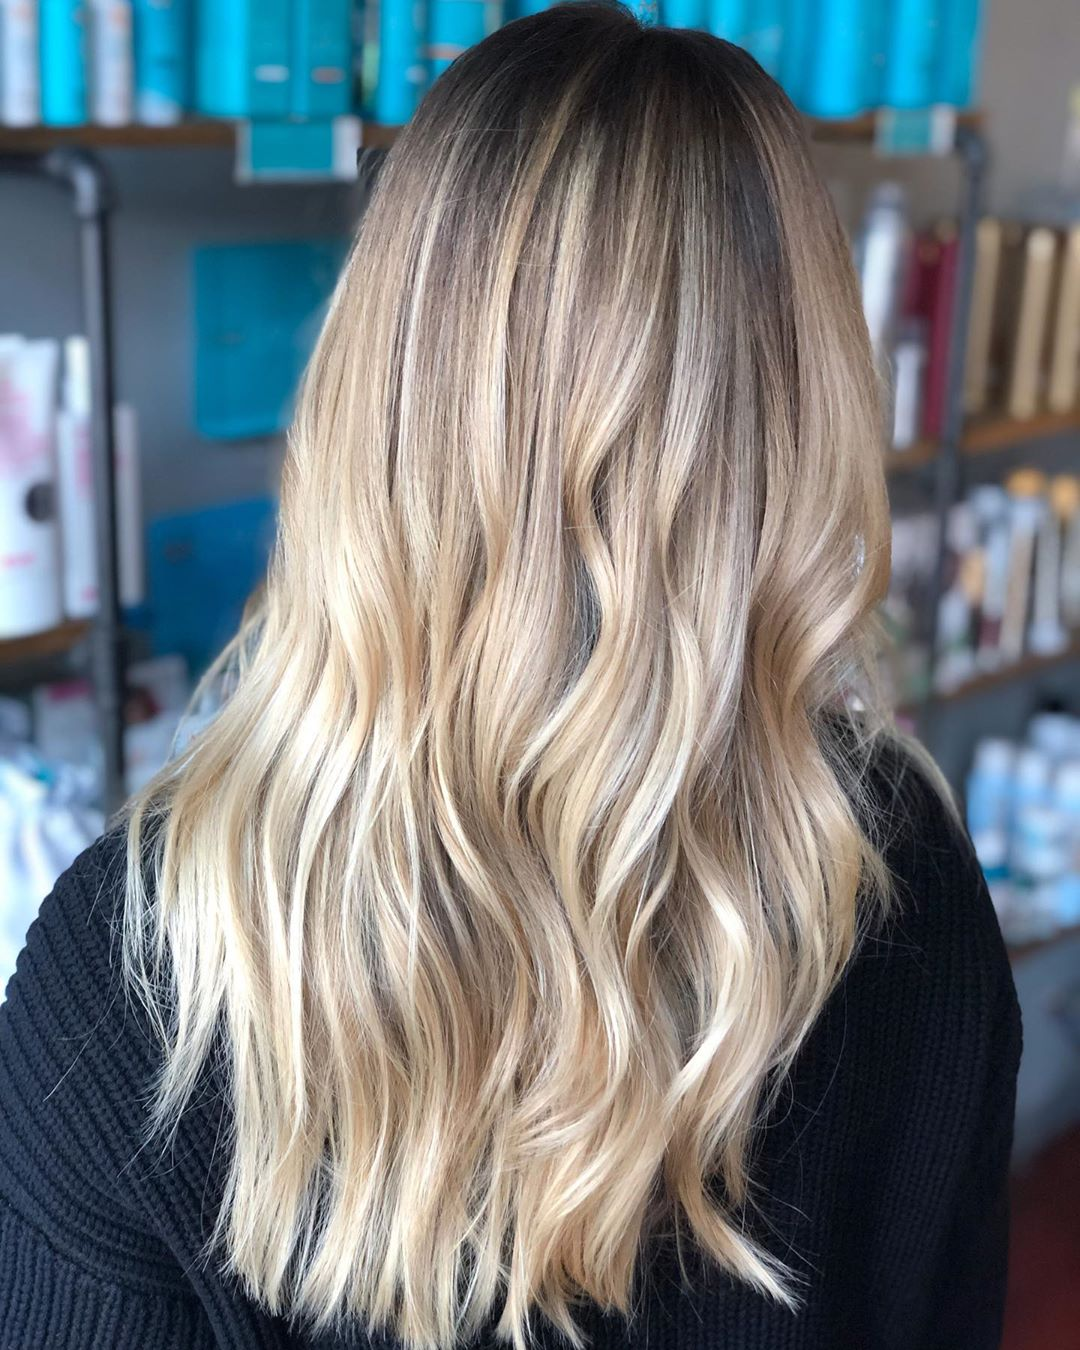 balayage ombre hairstyles 7 9 New Blonde Balayage Hairstyles You'll Love!